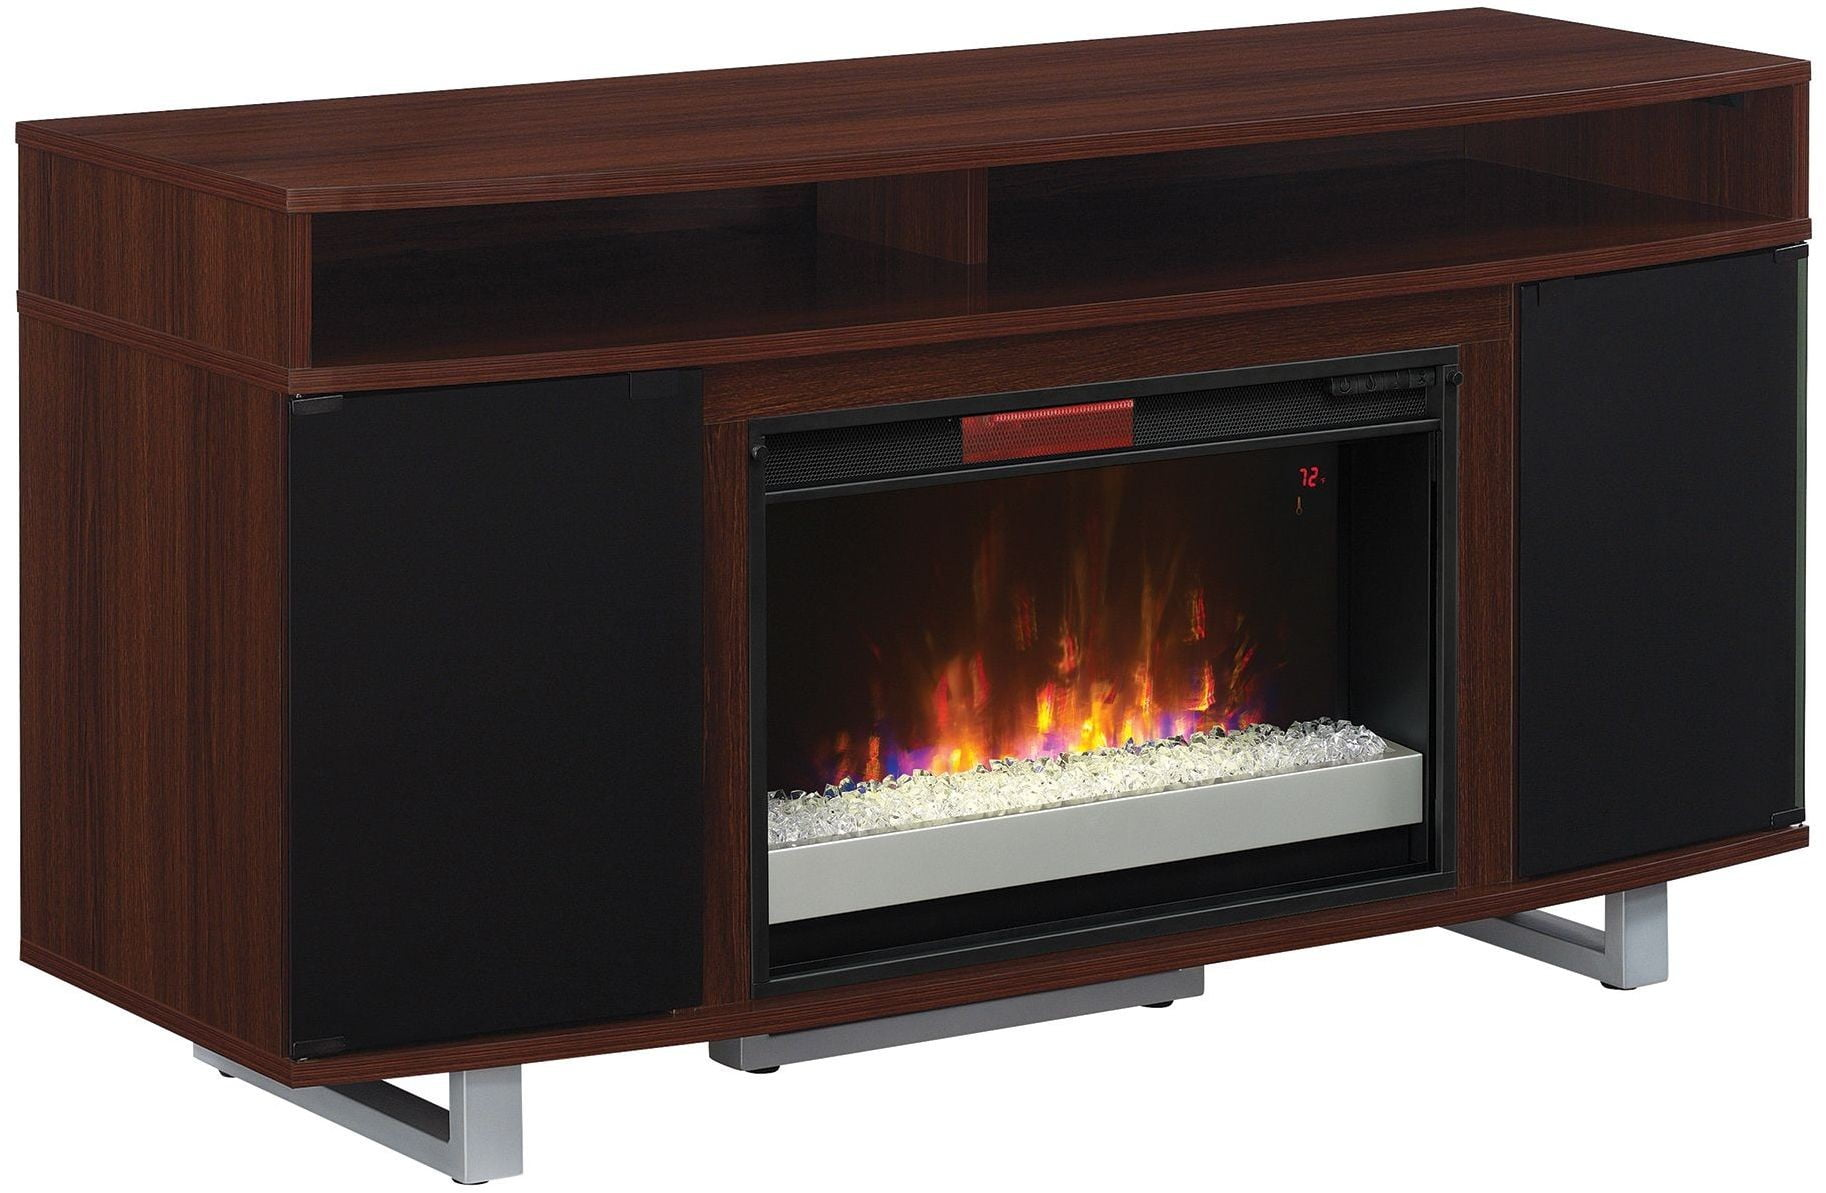 Classicflame High Gloss Cherry Enterprise Lite Tv Stand With 26 Infrared Quartz Electric